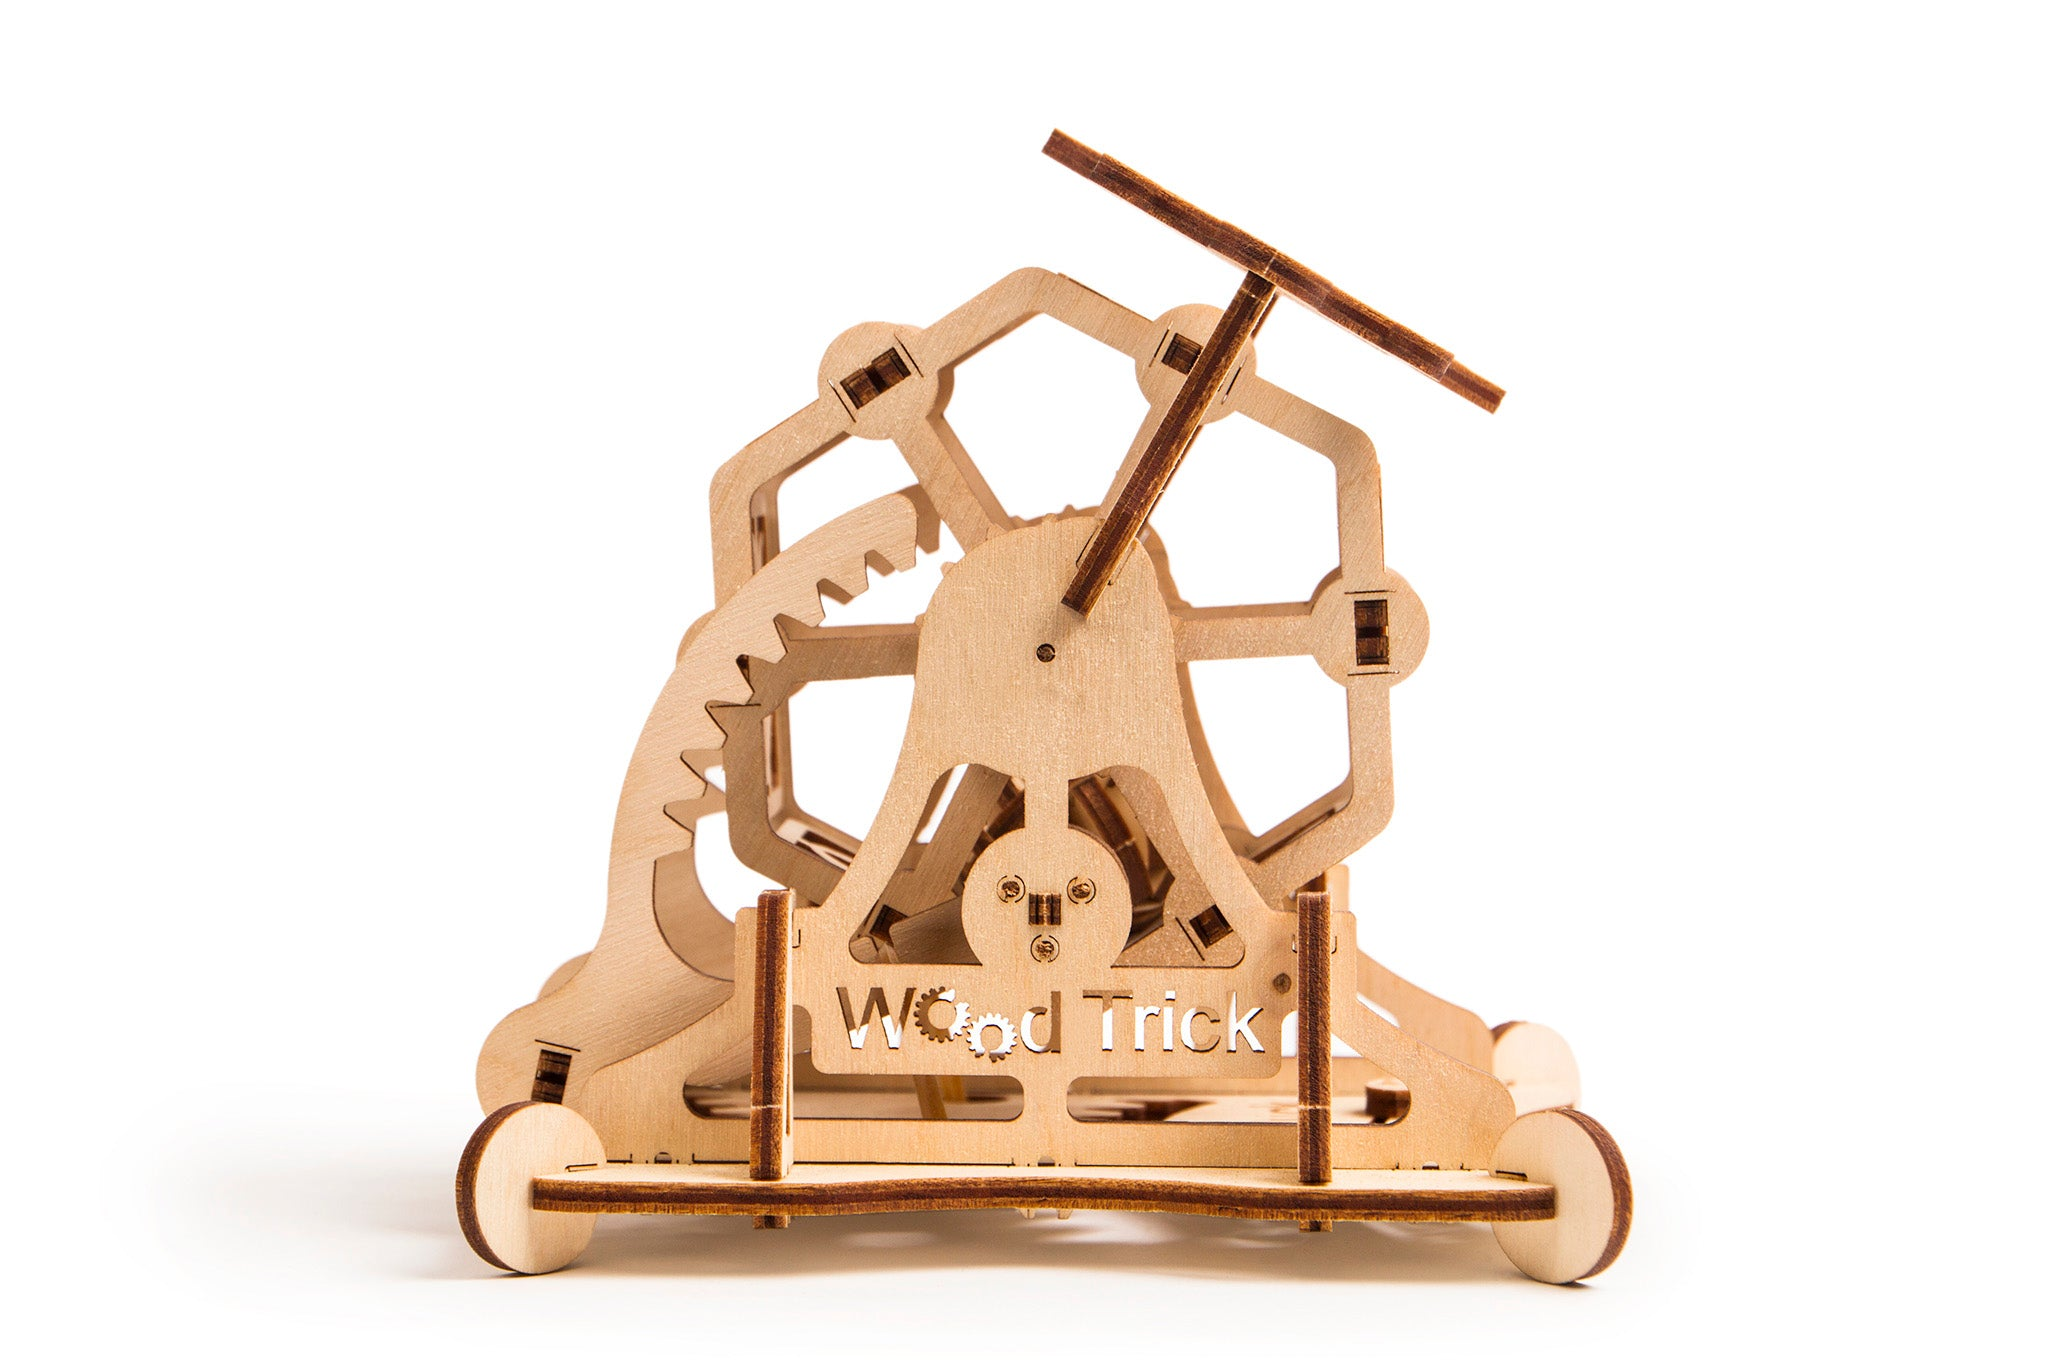 Wheel Of Fortune Wooden Toy Model For Kids And Adults